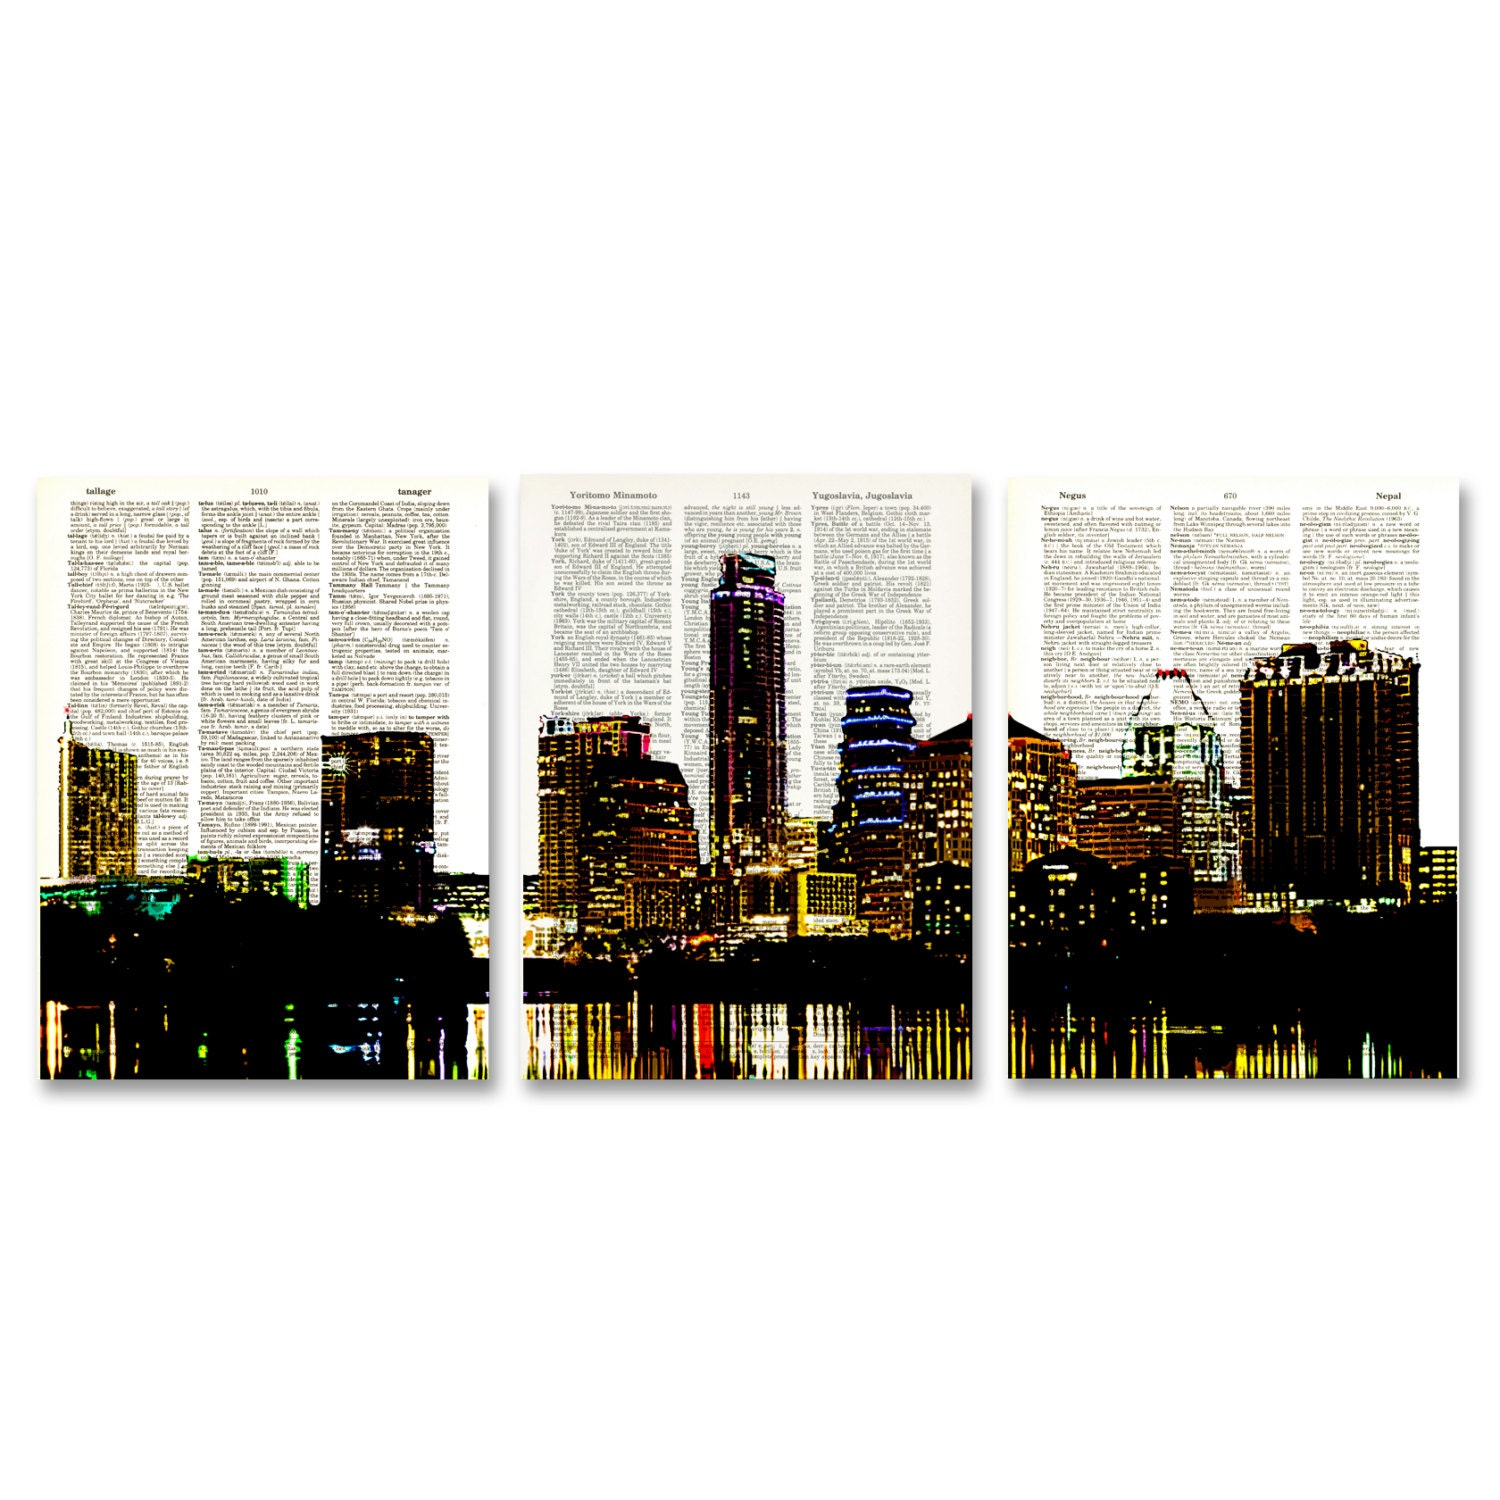 Color printing austin - Austin Texas Skyline 3 Pack Dictionary Prints City Scape Awesome Upcycled Vintage Dictionary Page Book Art Prints